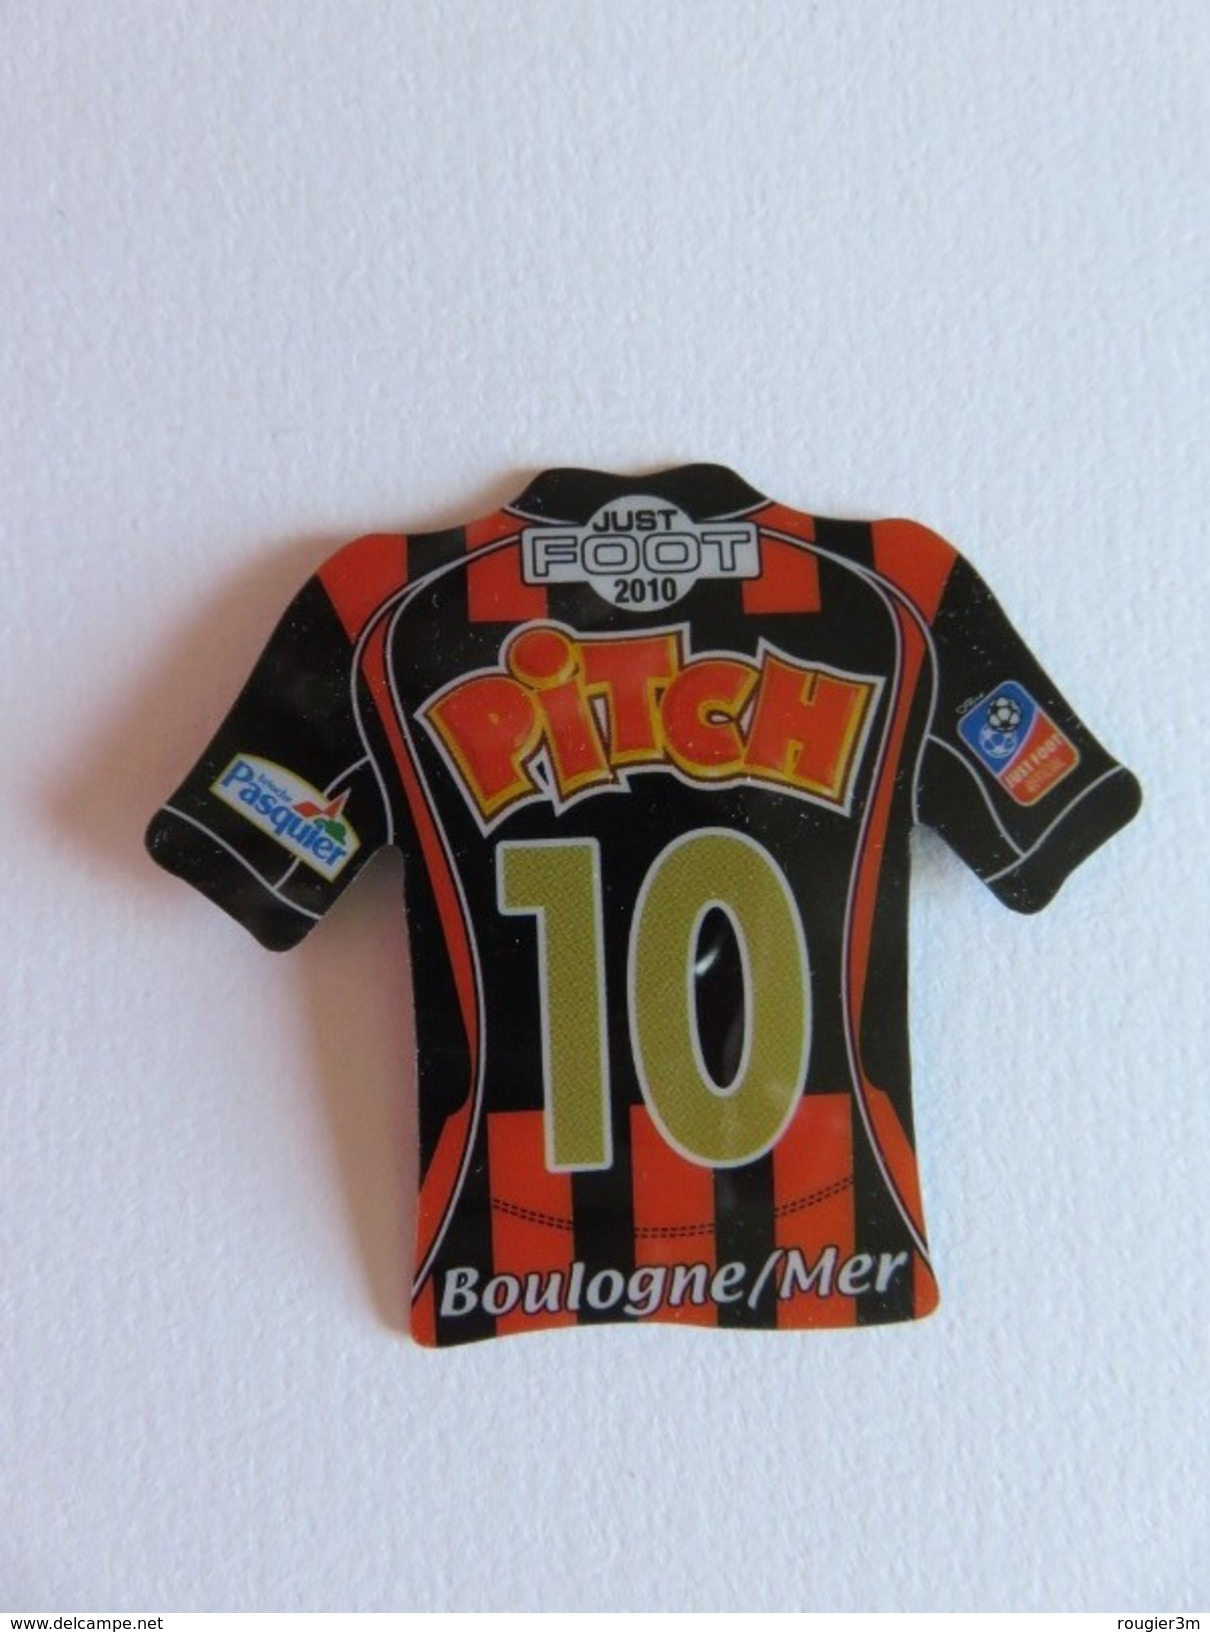 Magnet - Just Foot 2010 - Boulogne/Mer - N° 10 - Pasquier - Sports